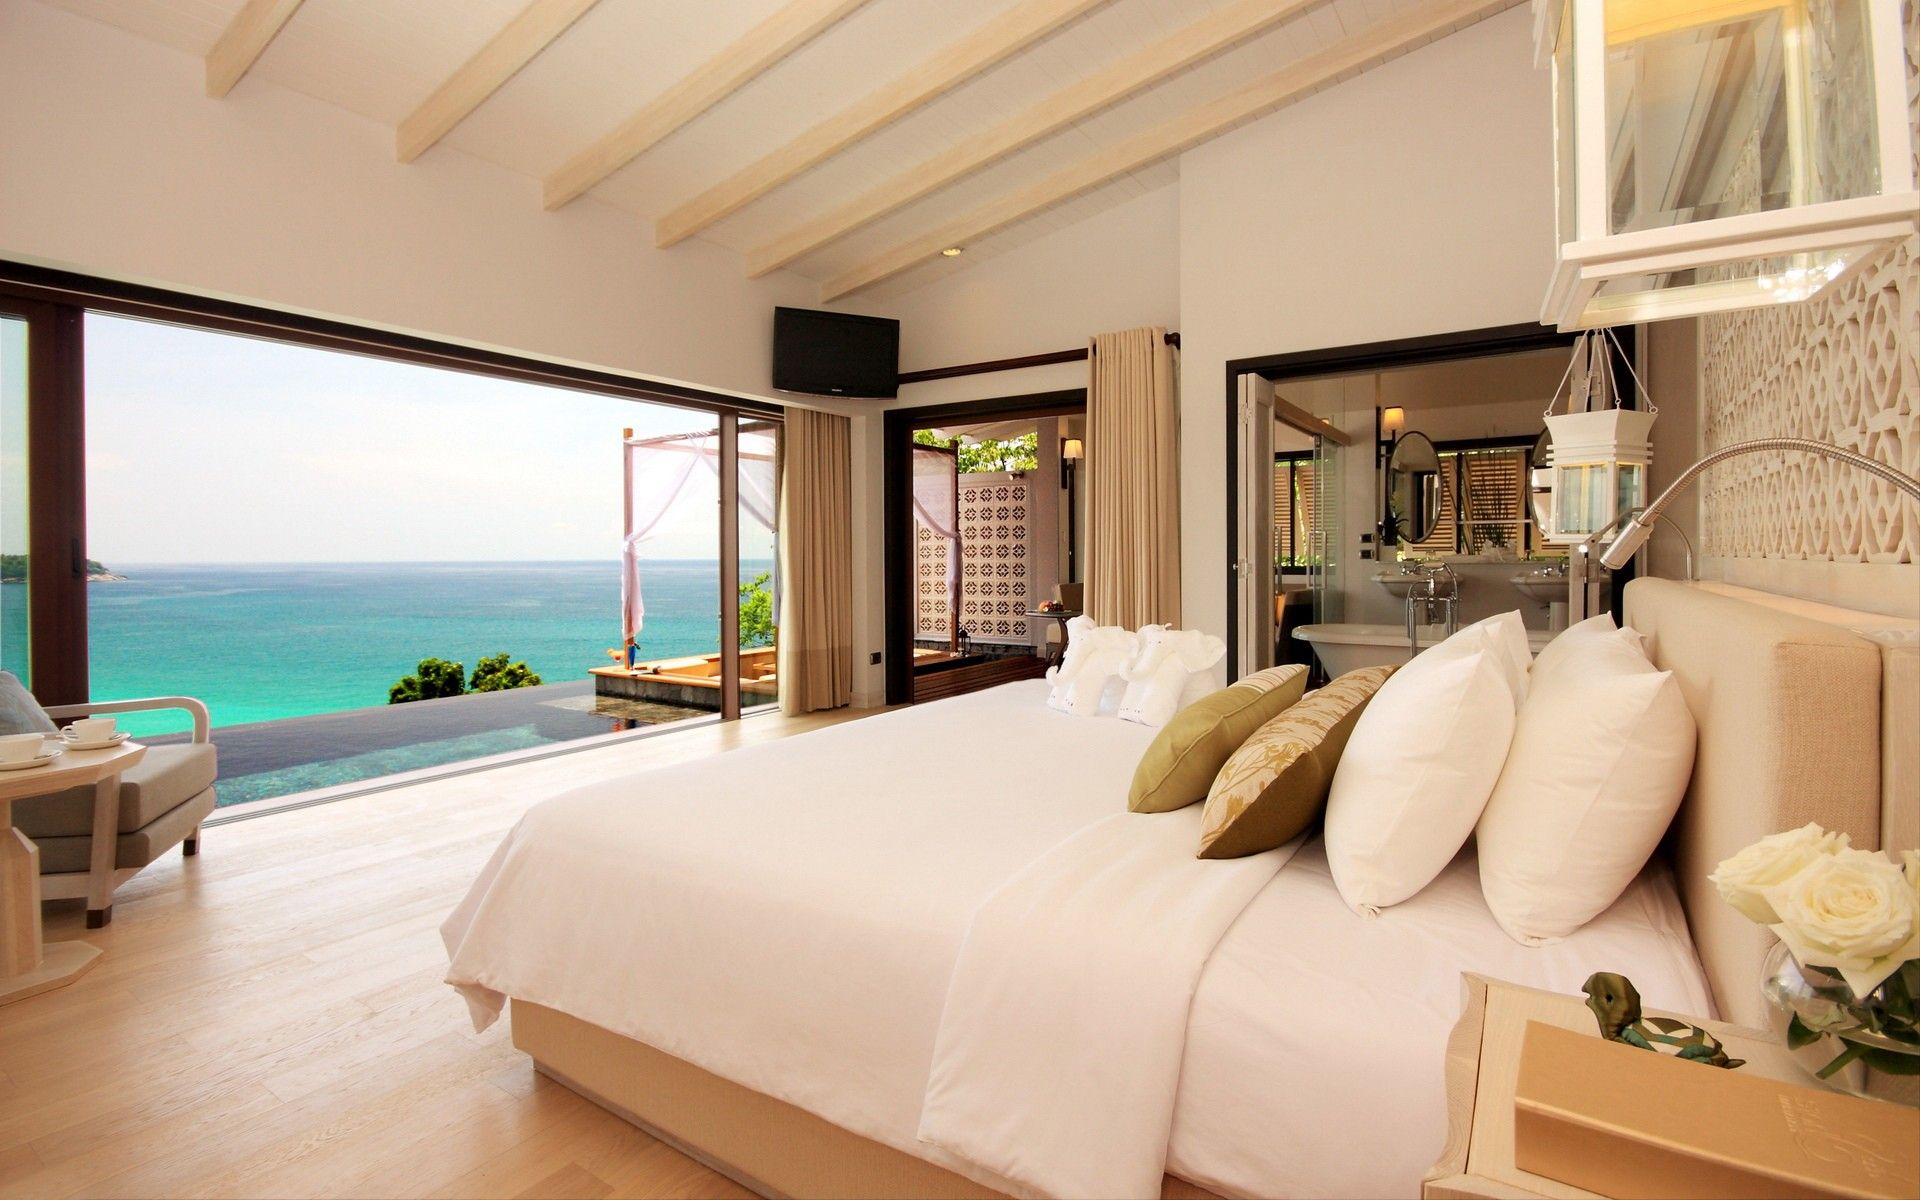 Pretty Bedrooms Look At This Bedroomthe Light Colors Really Complement The Ocean